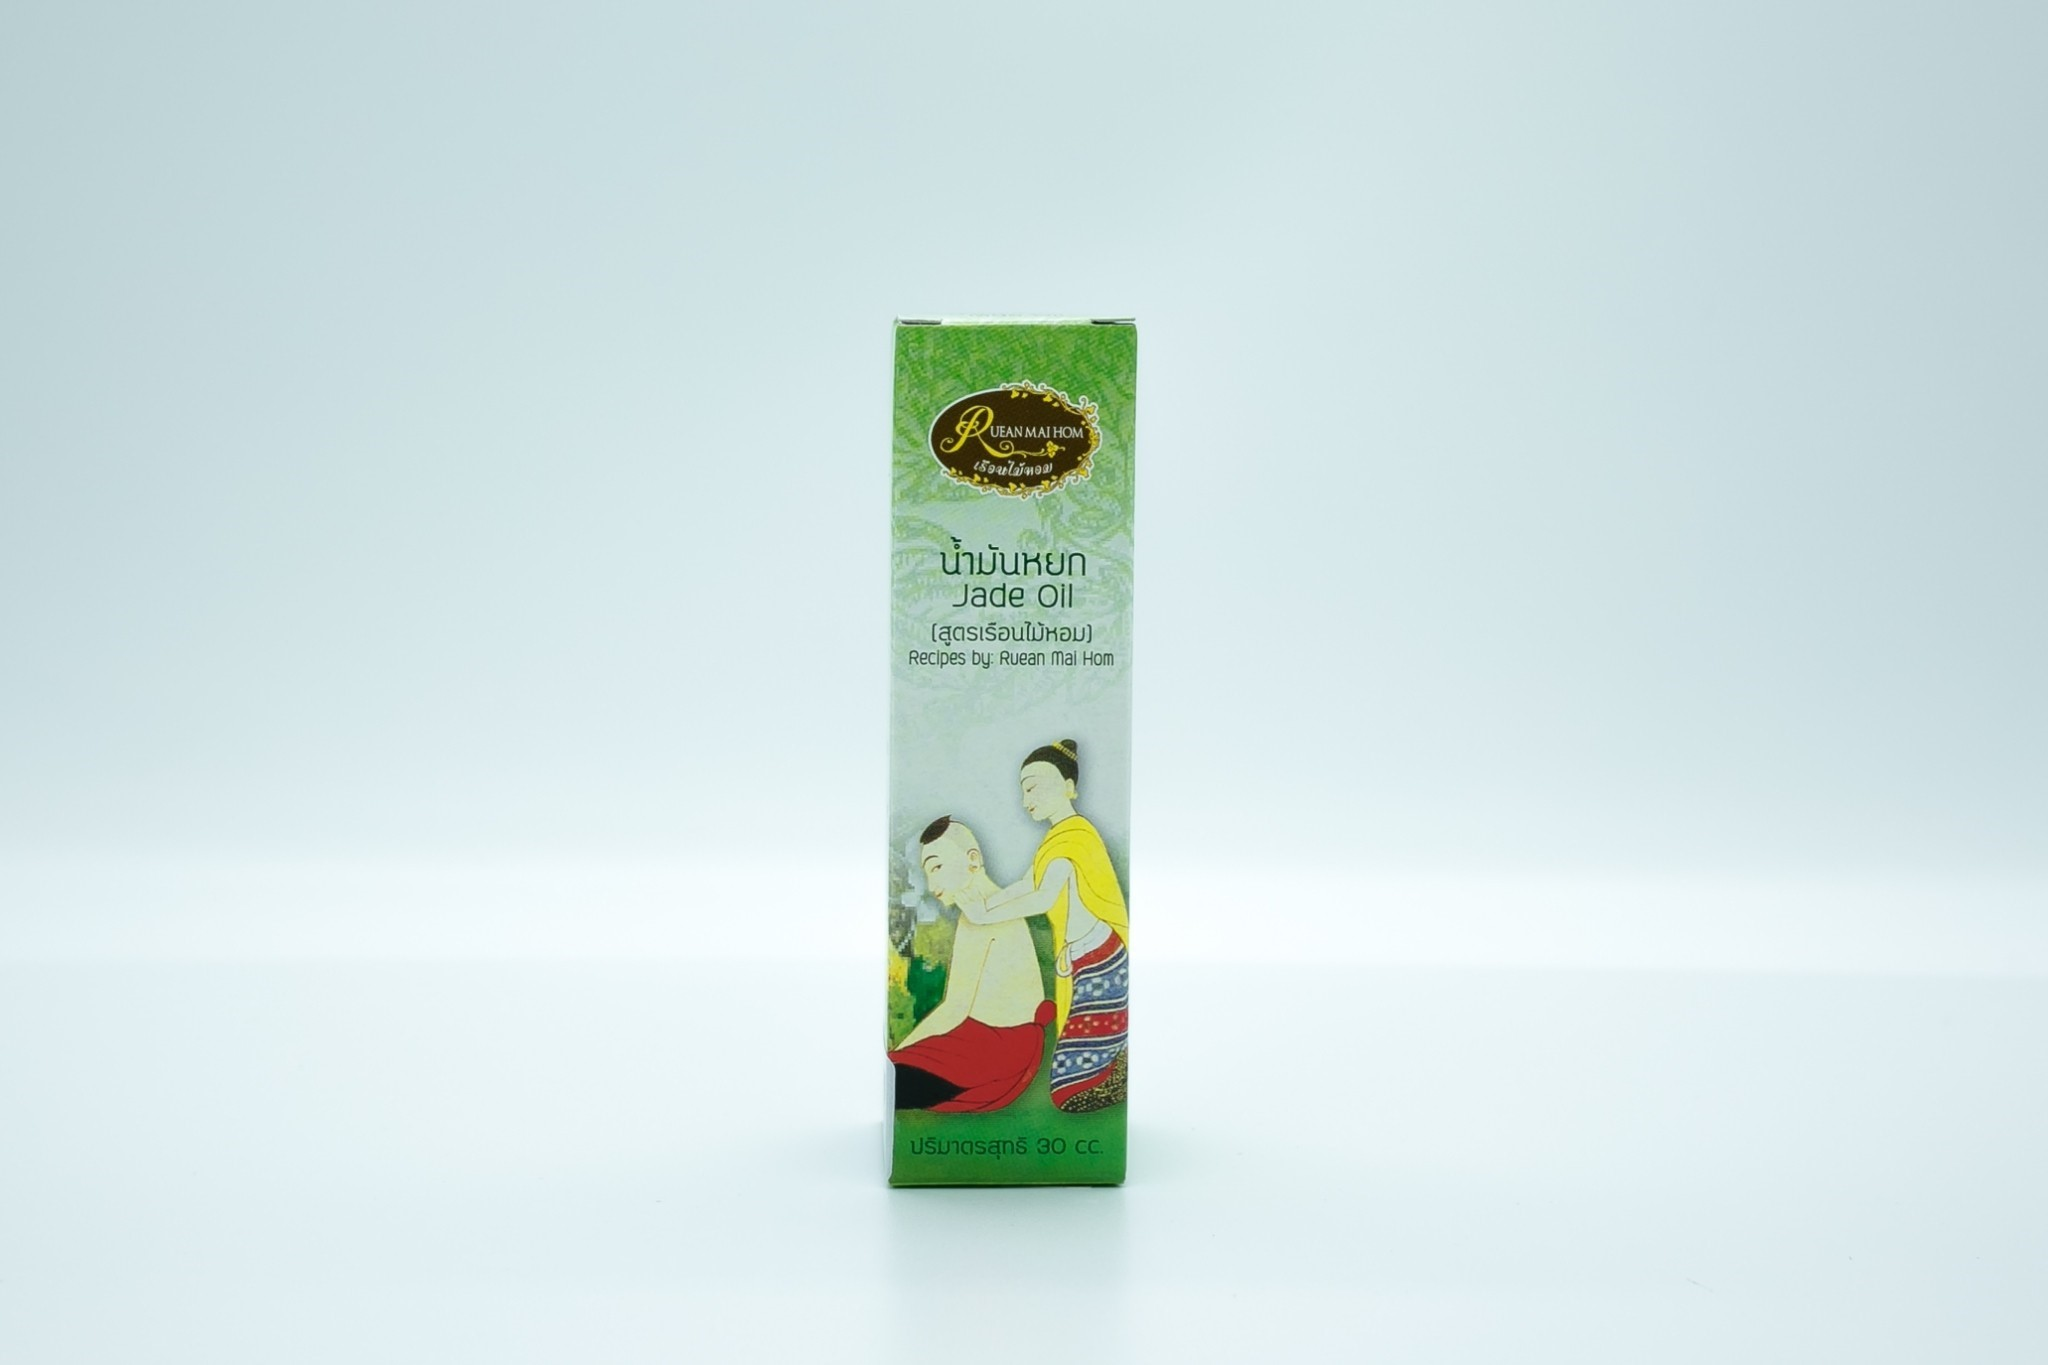 Jade Oil of Rueanmaihom Formula